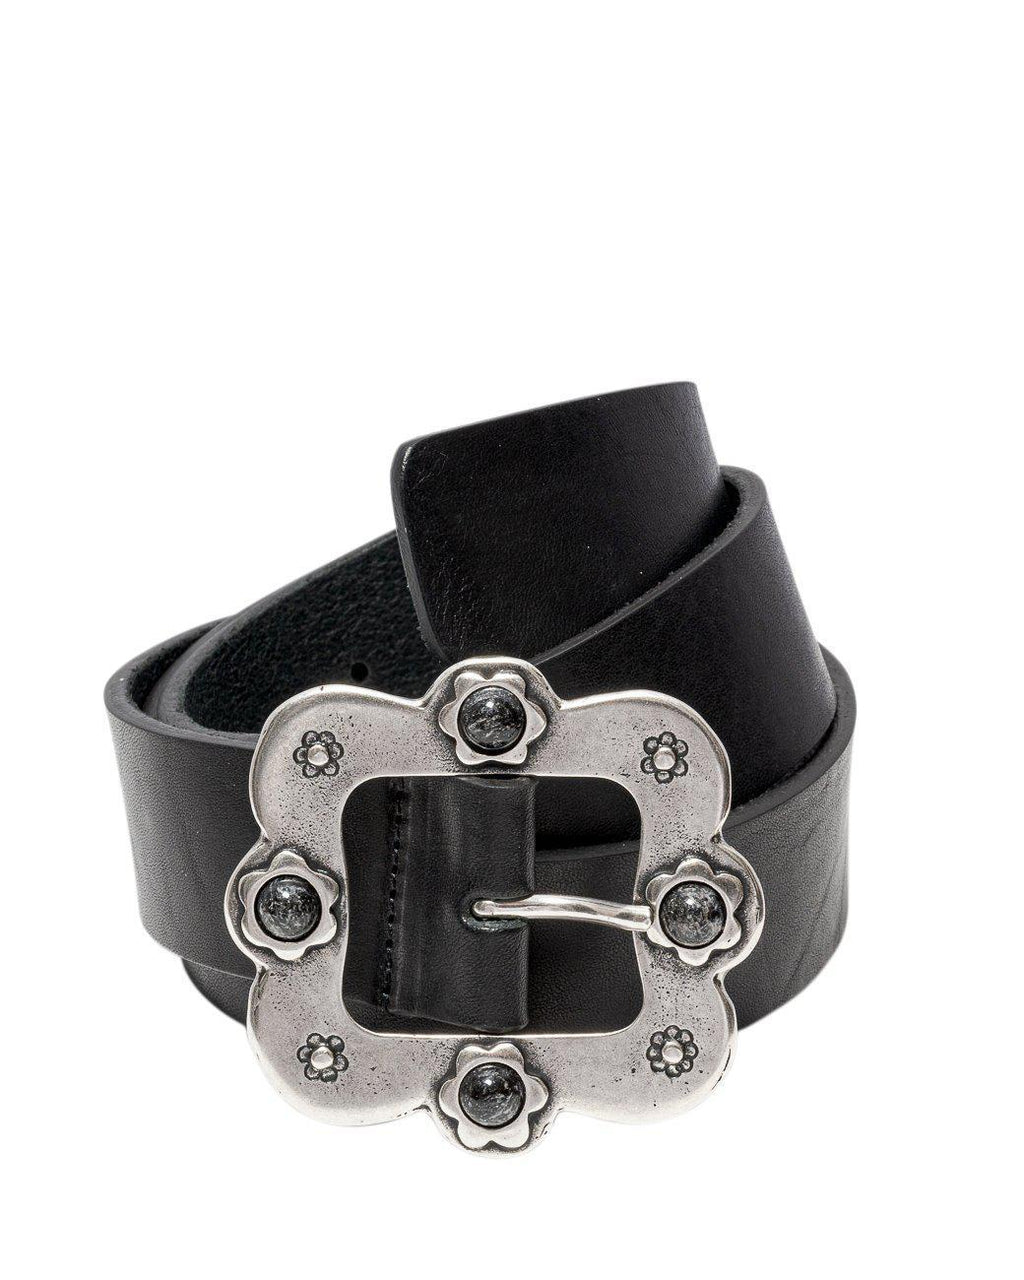 LEATHER BELT WITH FLORAL BUCKLE